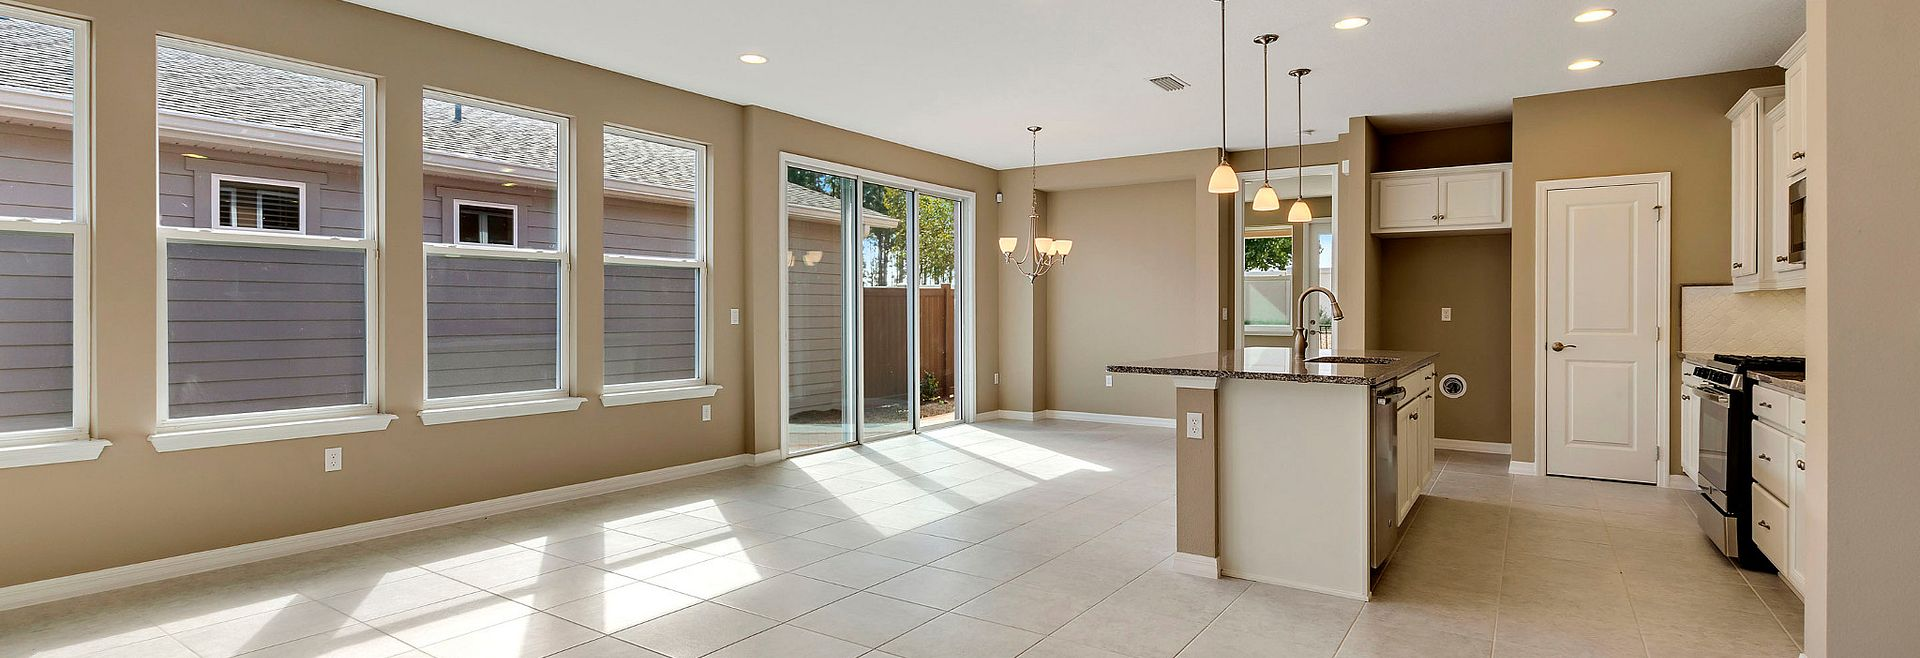 Trilogy Orlando Amalfi Plan Quick Move In Home Great Room